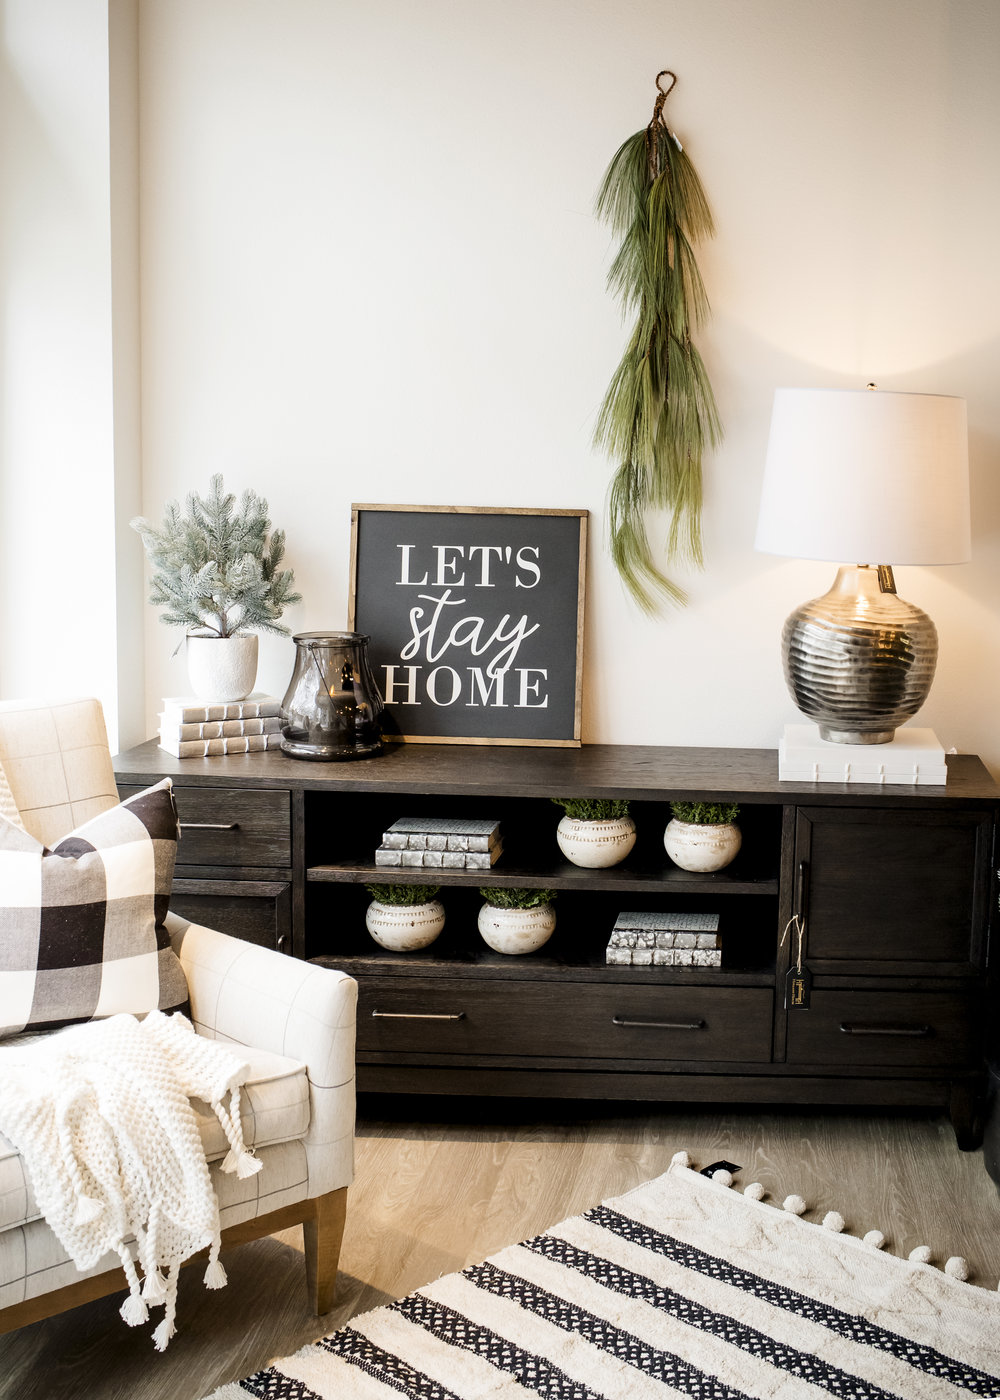 Silver Spine Books $42/ec, White Callie Vase $12.50/ec, Battery Powered & Timer option Platinum Candle $44, Blue Spruce $42, White Organic Cotton Throw $142, Cotton Woven Black/White 3x5 Rug $99, Buffalo Plaid Pillow $41.50, Let's Stay Home Sign $71